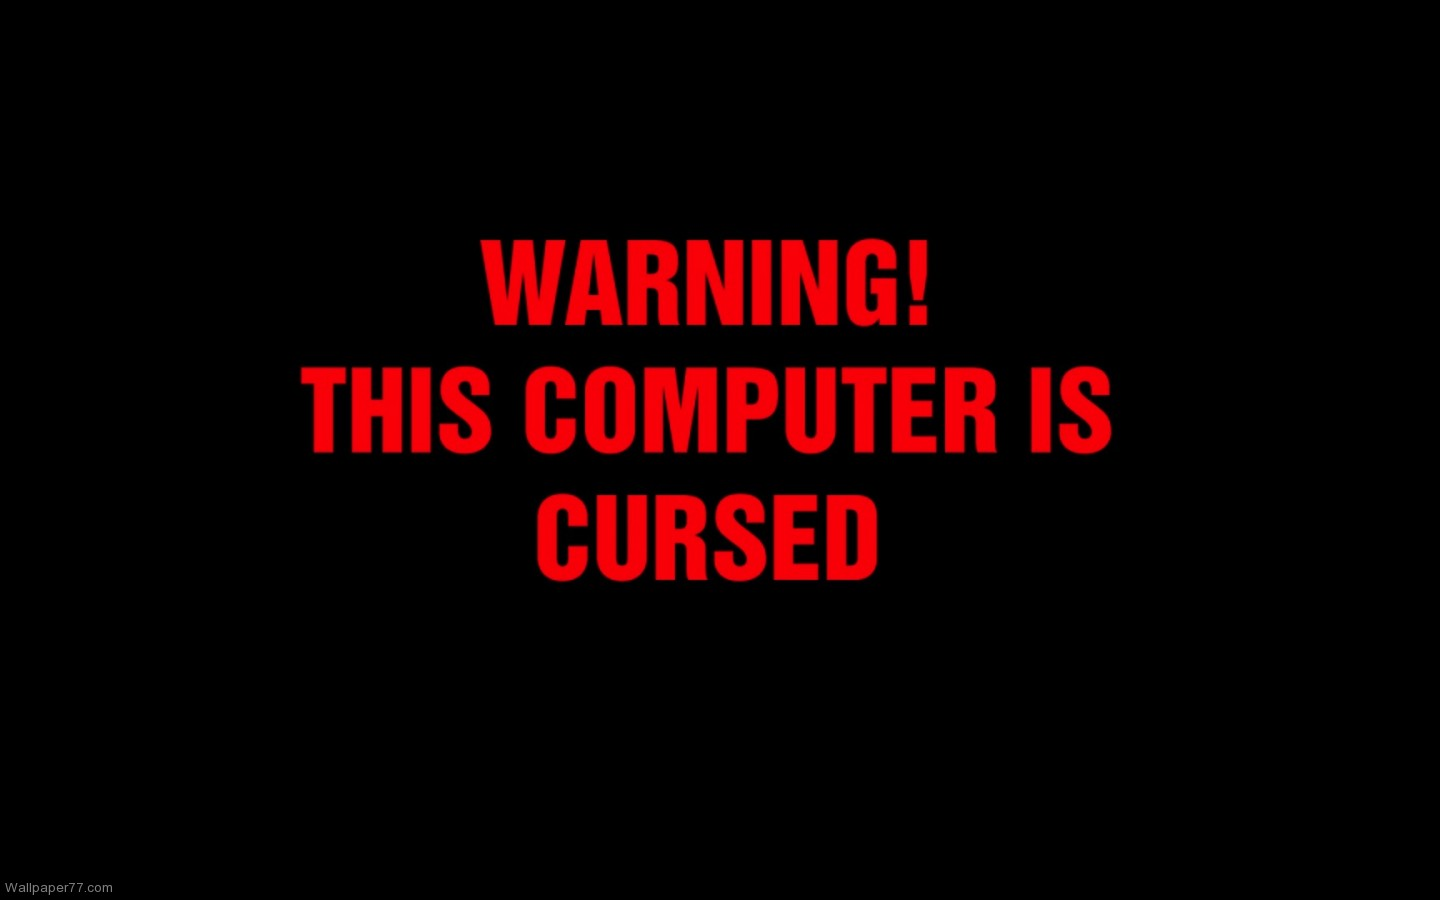 Computer Is Cursed Funny Quotes Wallpaper Wallpapers Gallery 1440x900